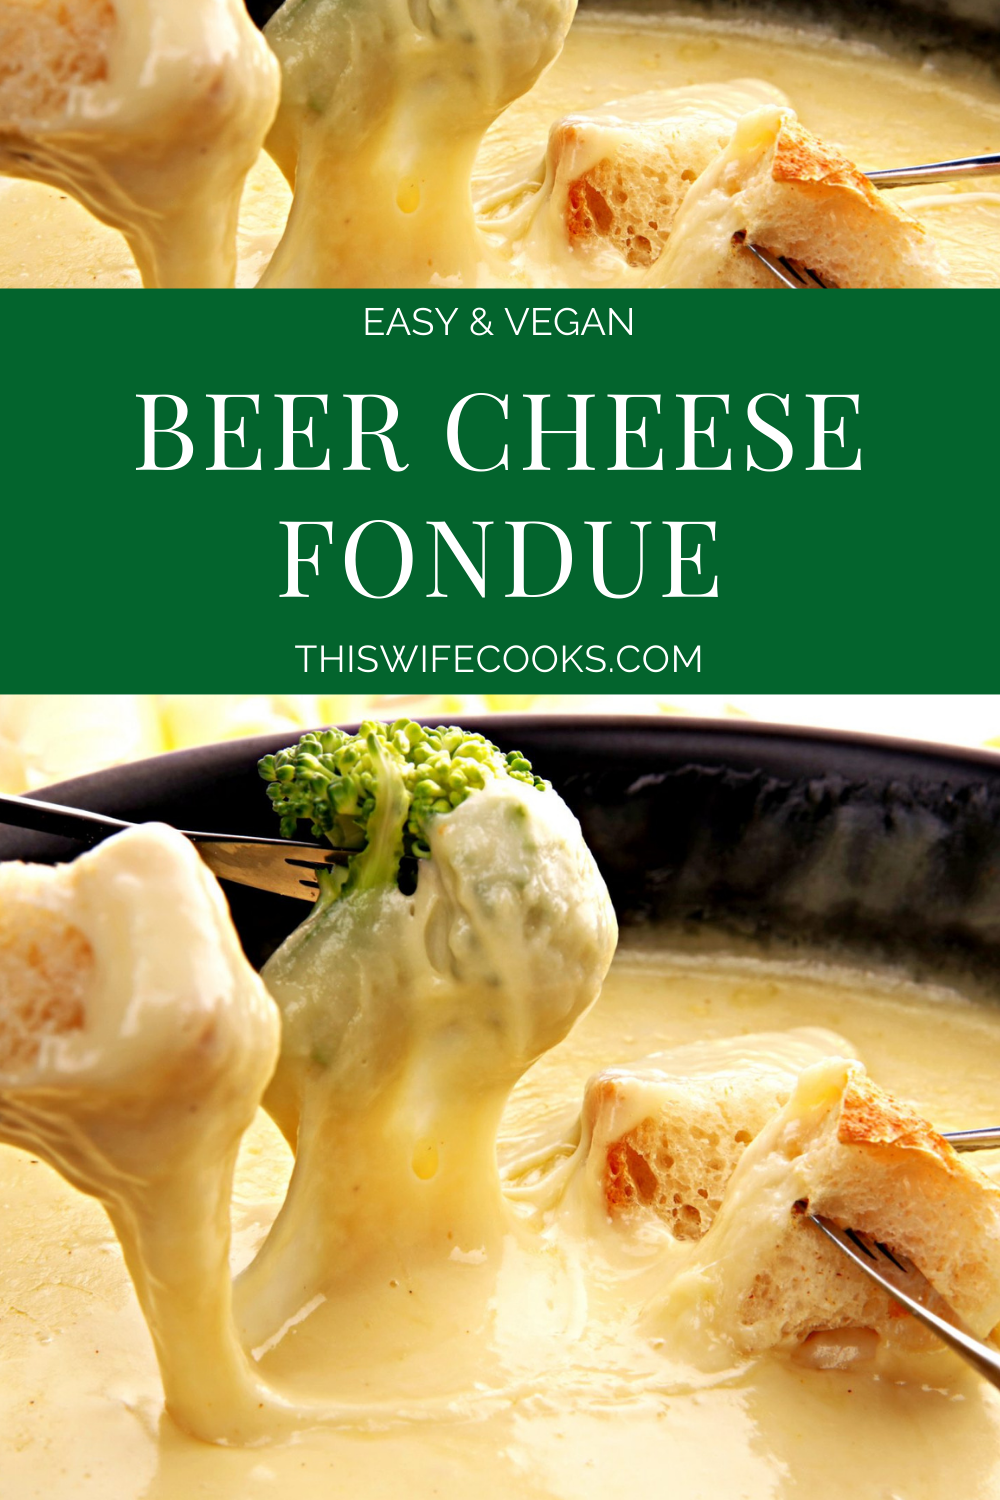 A crowd pleasing vegan beer cheese fondue perfect for holiday get-togethers, game day, or anytime you want to add a fun communal twist to dinner at home! via @thiswifecooks